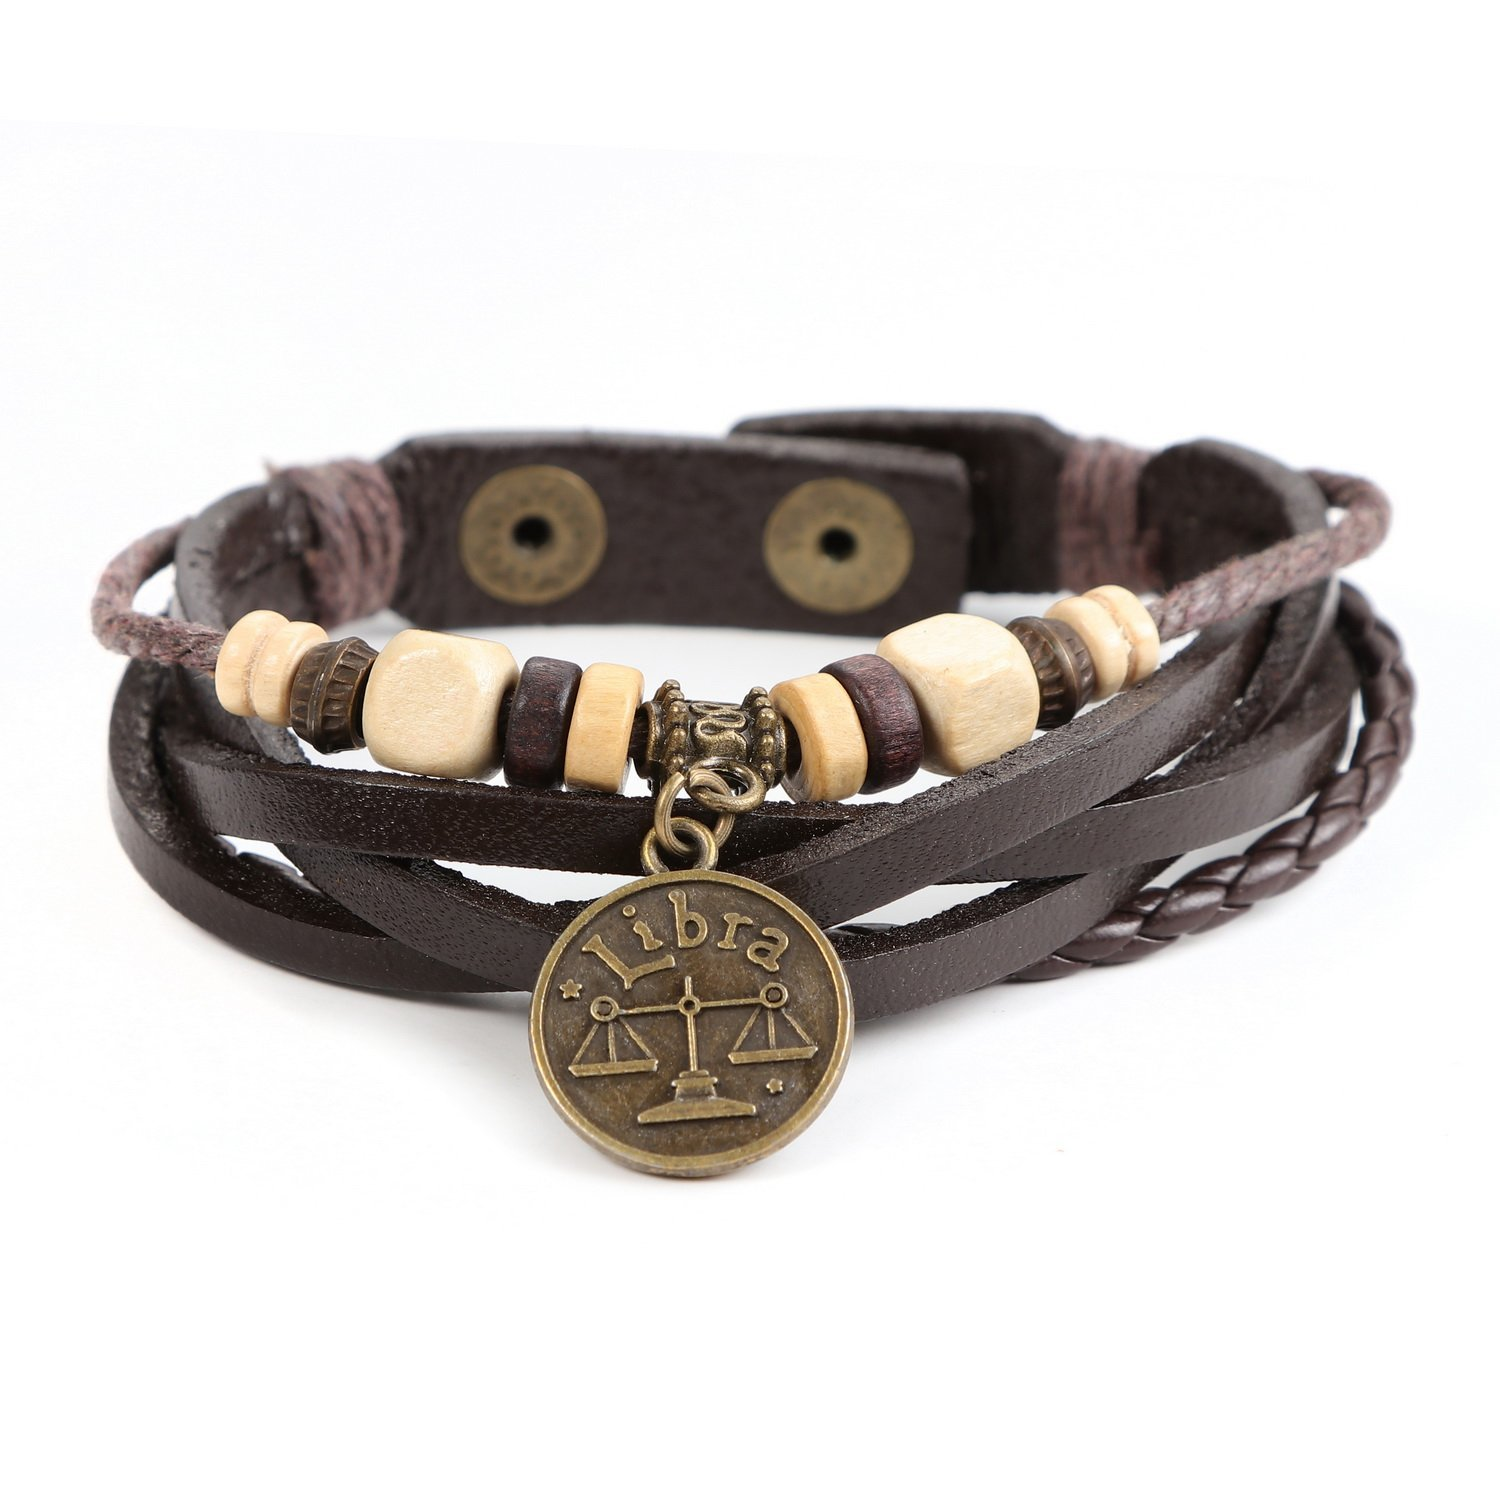 Lucky Handmade Natural Constellation Zodiac Sign Logo Genuine Real Leather Bracelet with Charms, Beads, Button, Adjustable Size, Gift for Him or for Her, Unisex (Libra - Brown Leather): Cuff Bracelets